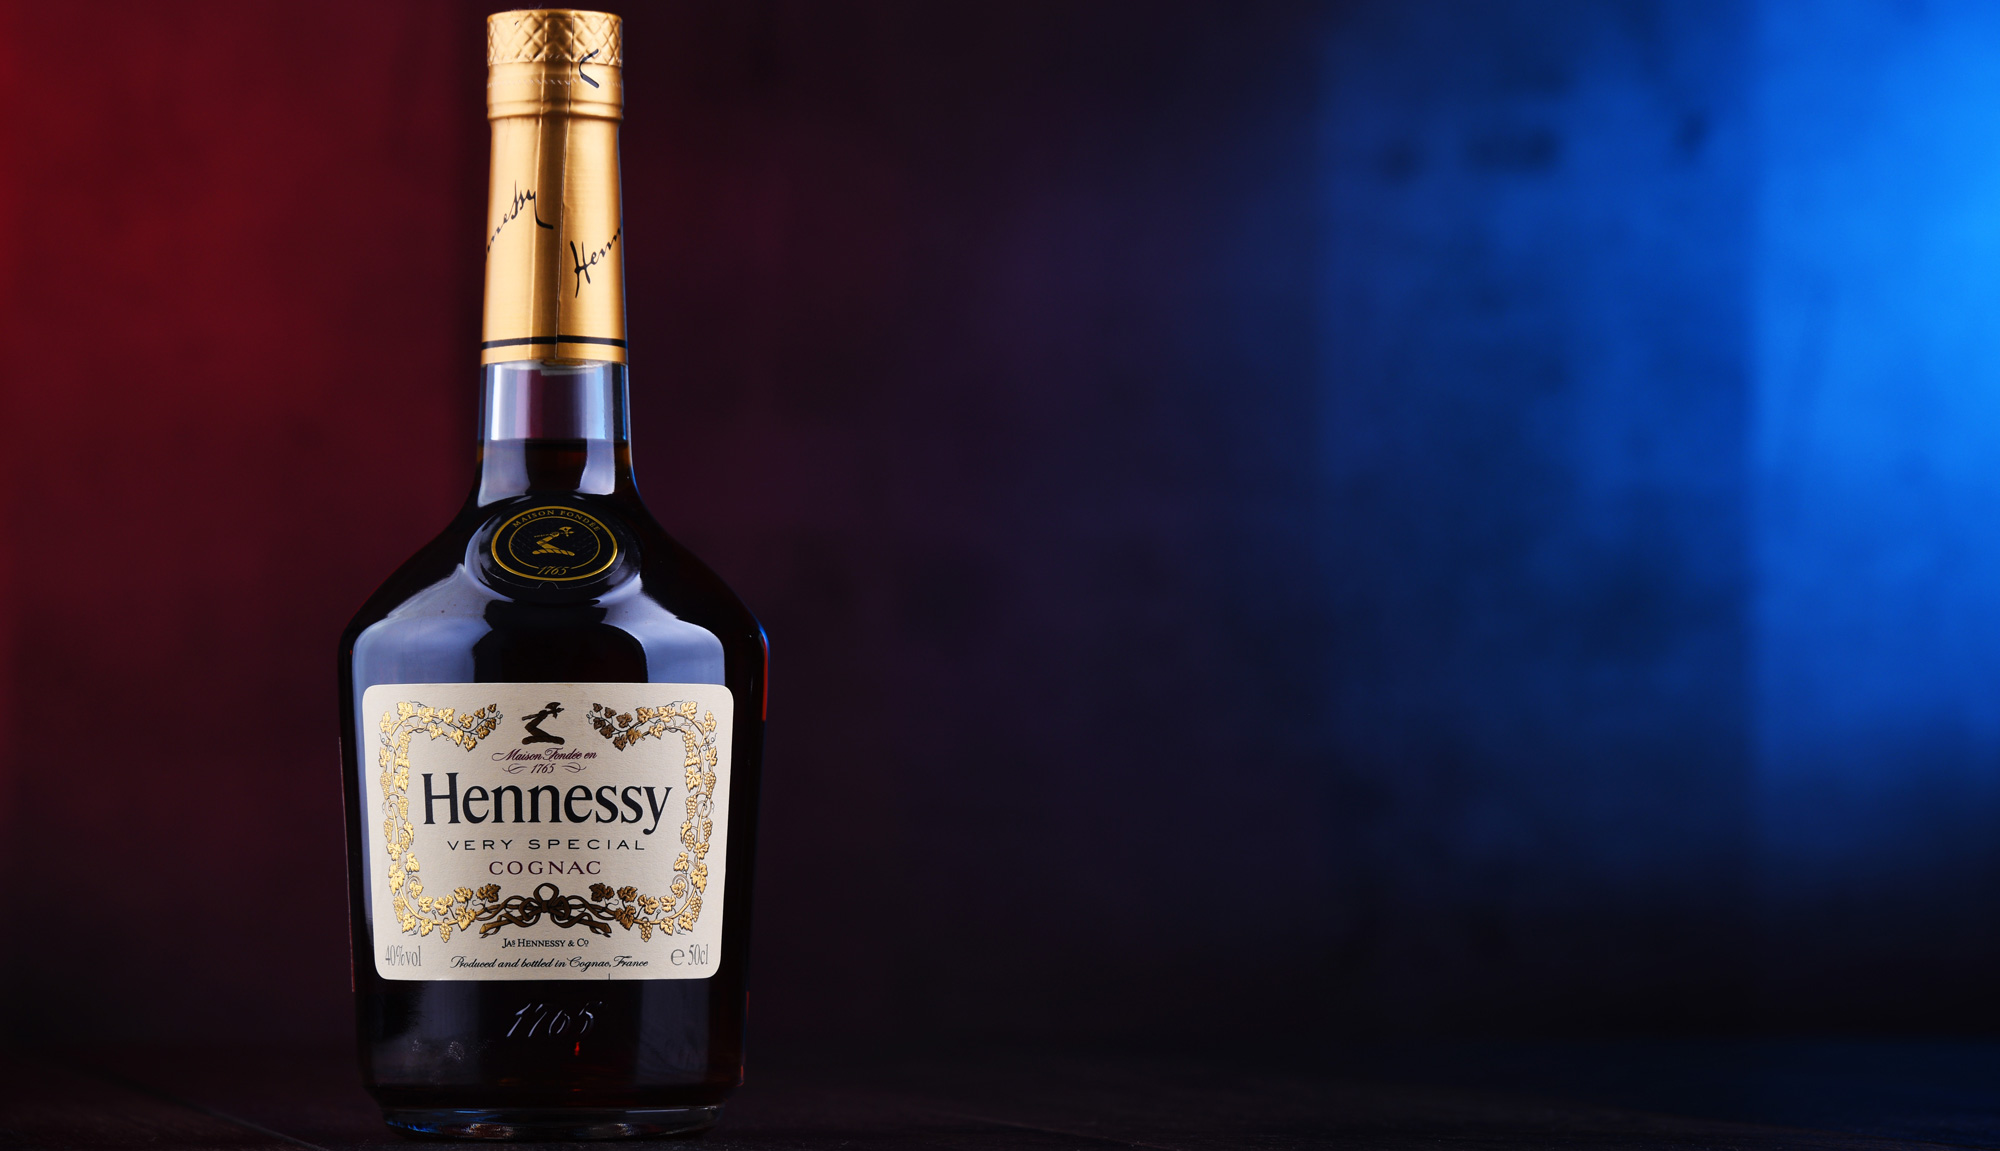 A bottle of Hennessy, a famous brand of cognac